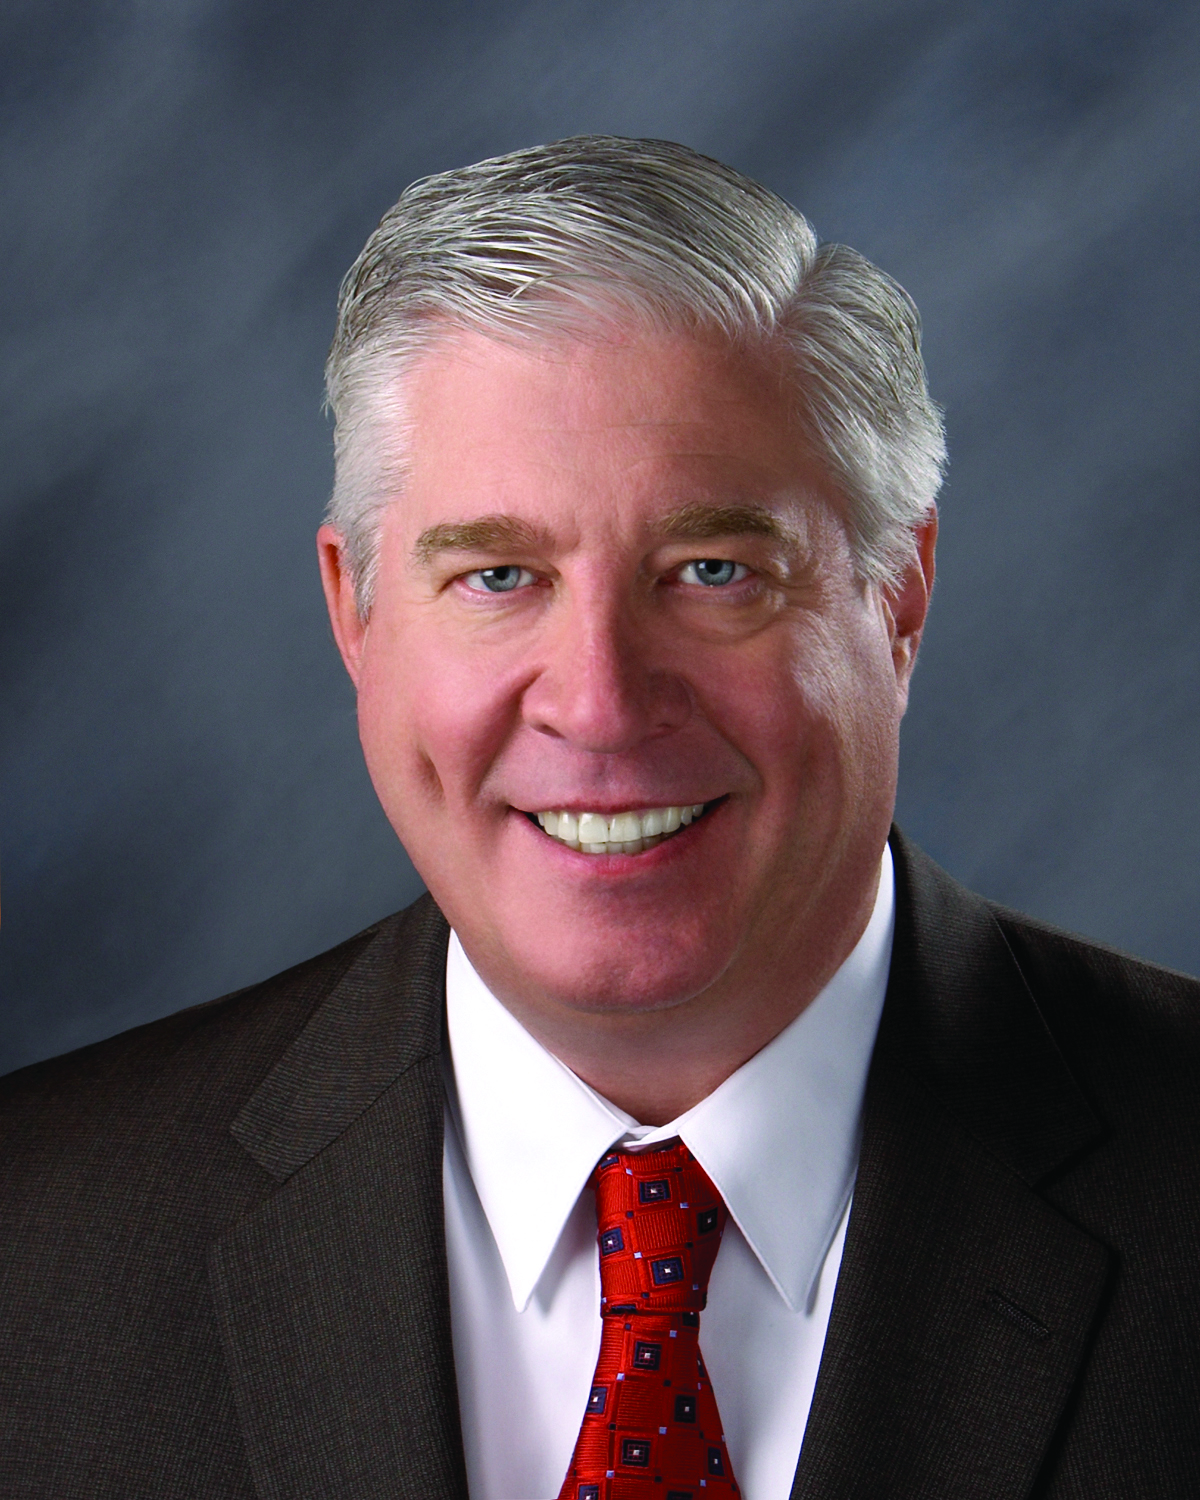 Jim Emme, an older, light-skin, male-presenting person with gray hair and blue eyes in a suit with a red tie smiles at the camera.